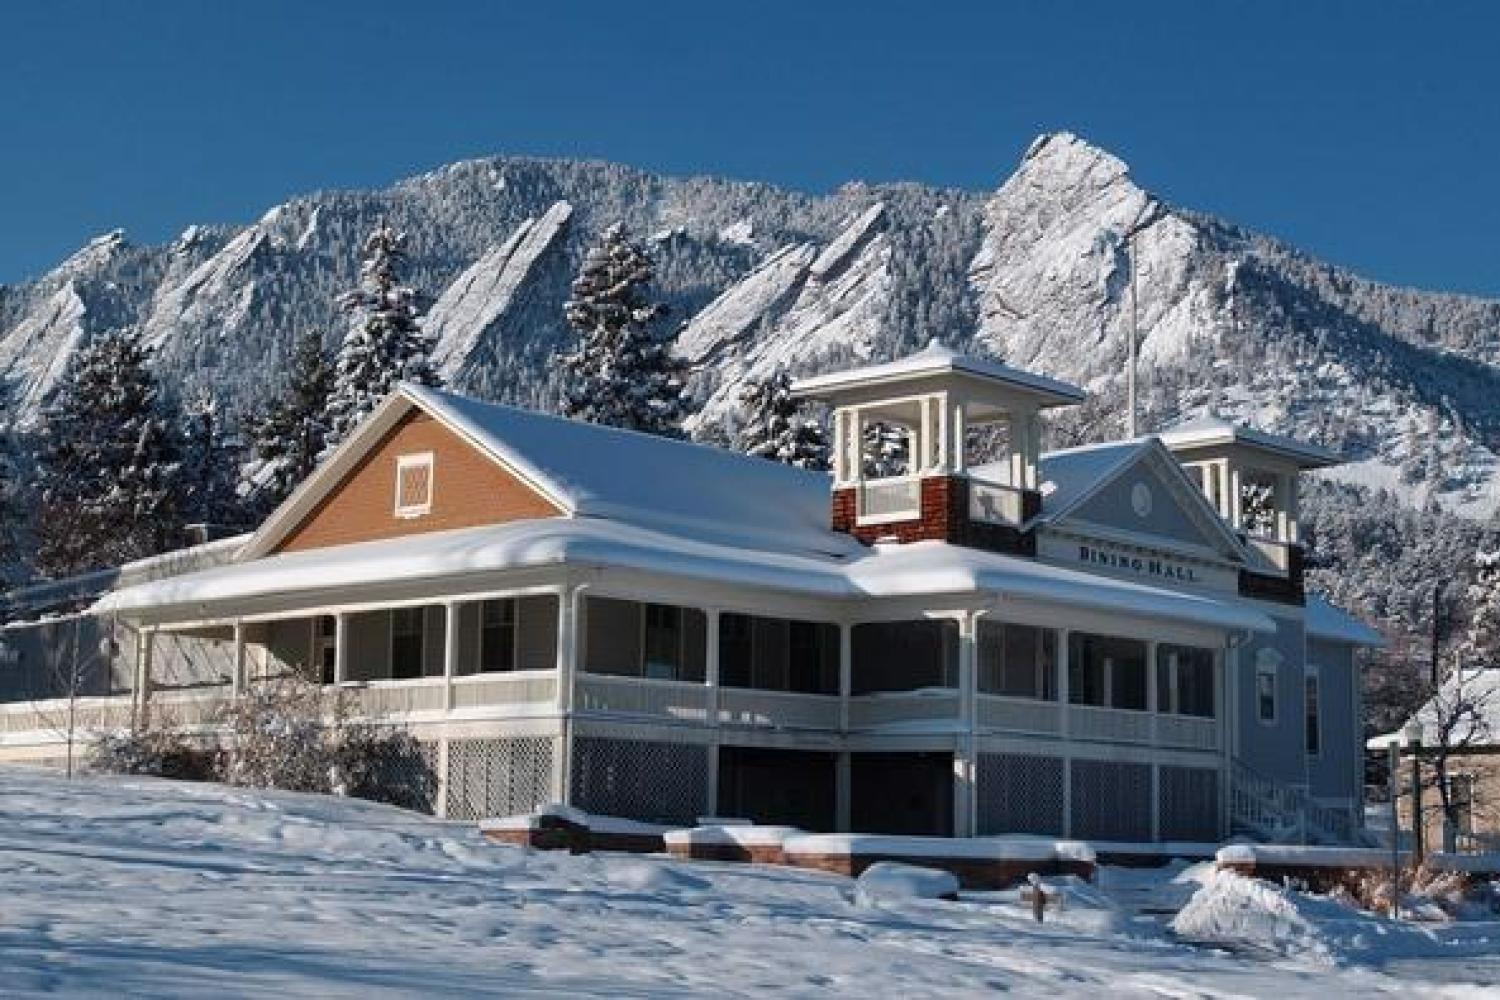 Boulder's Chautauqua is on the National Register of Historic Places